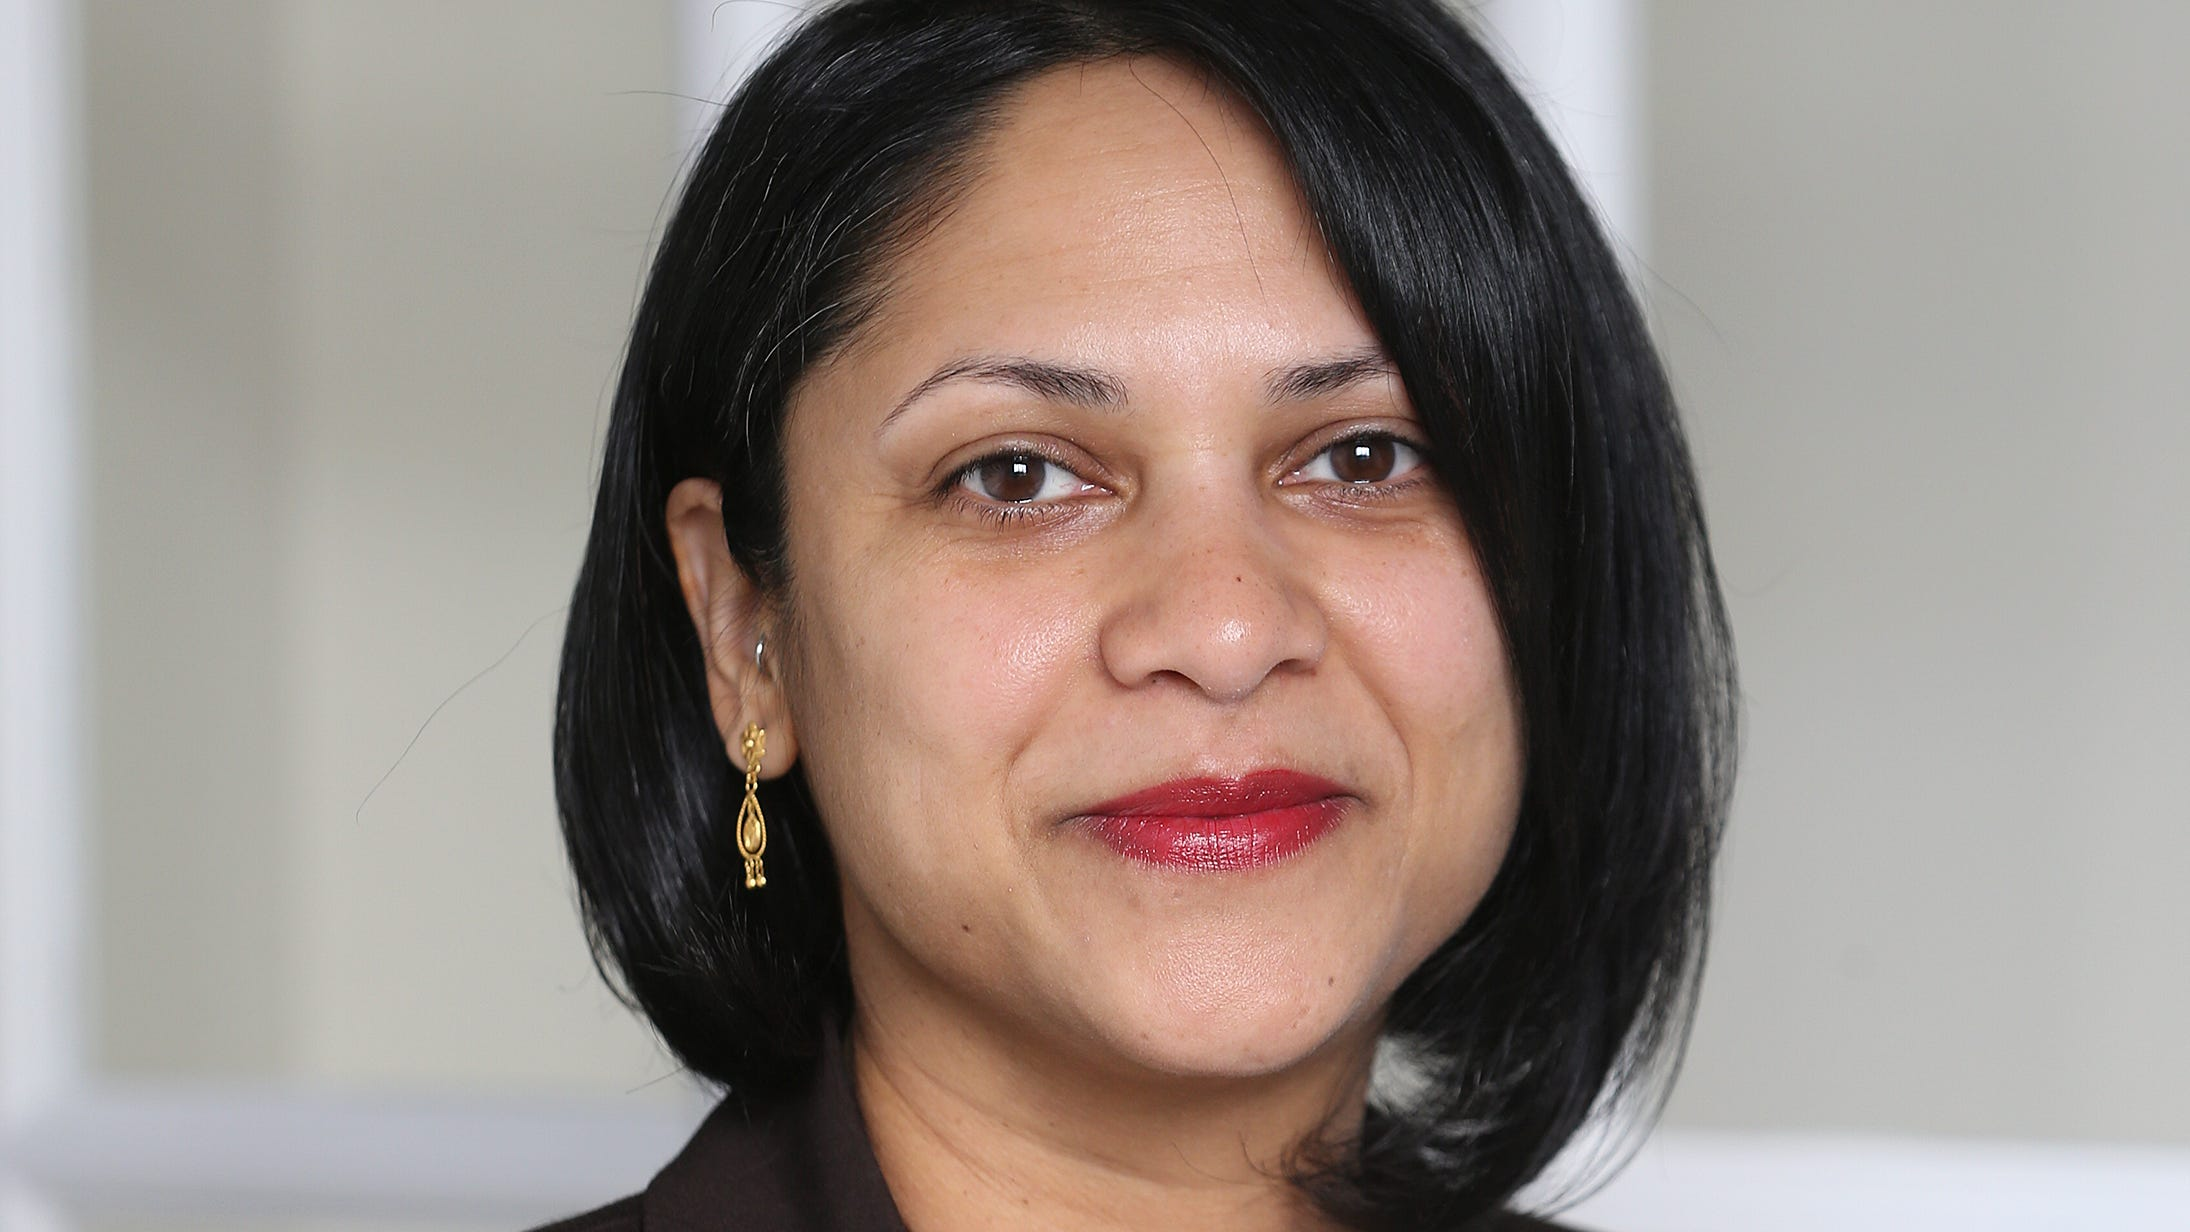 www.courier-journal.com: Kentucky Rep. Nima Kulkarni: Lawmaker, lawyer and now podcaster